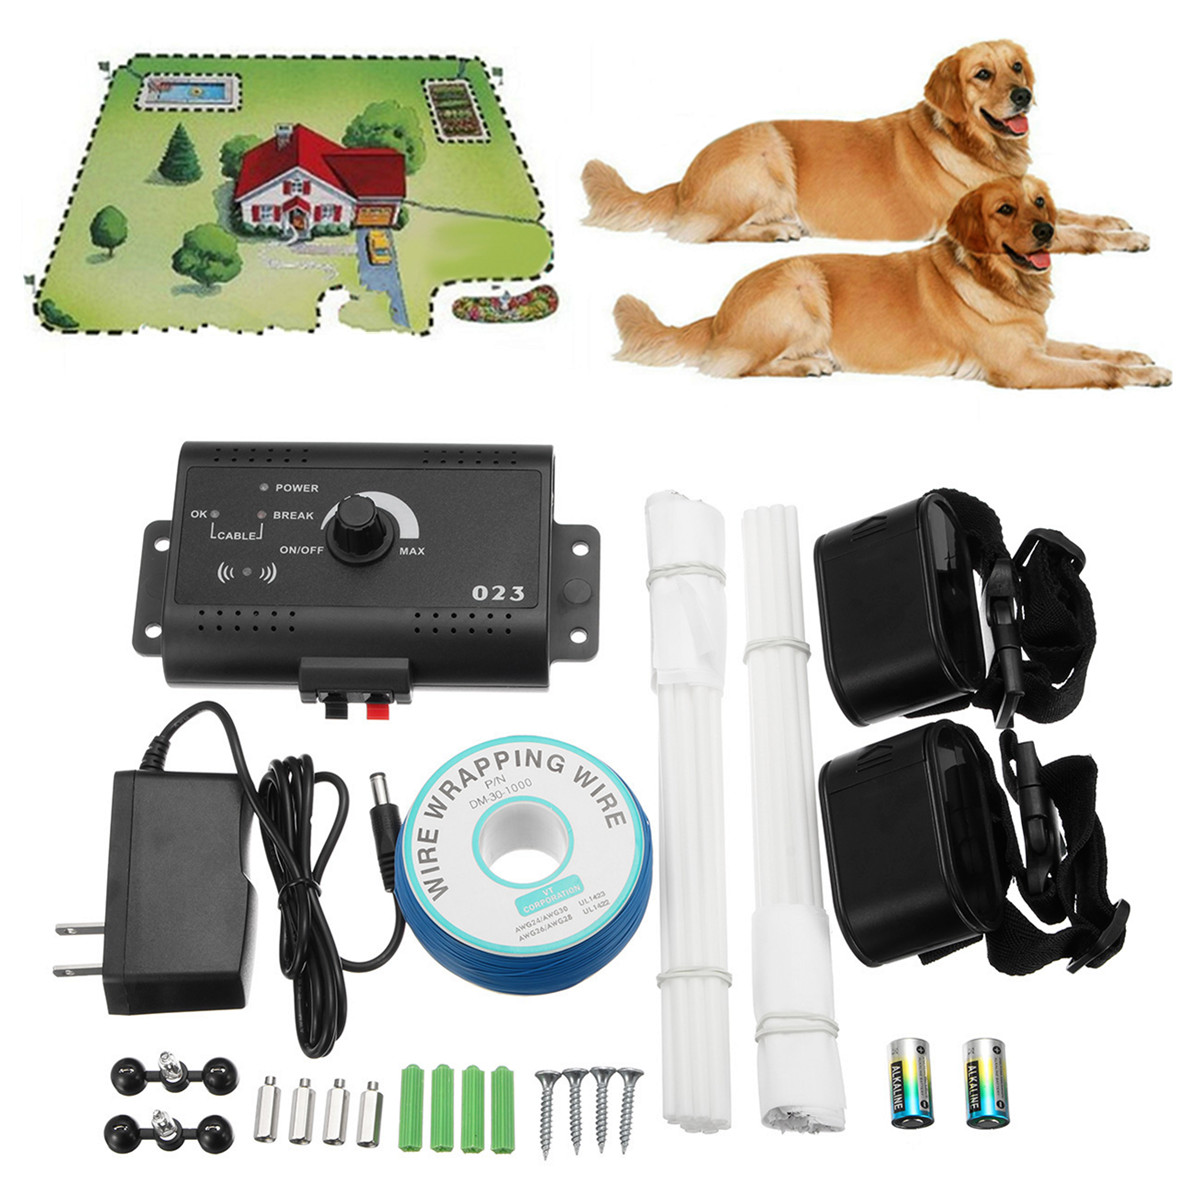 eivotor underground electric dog fence system 2 shock collar waterproof for 2 dogsneck size